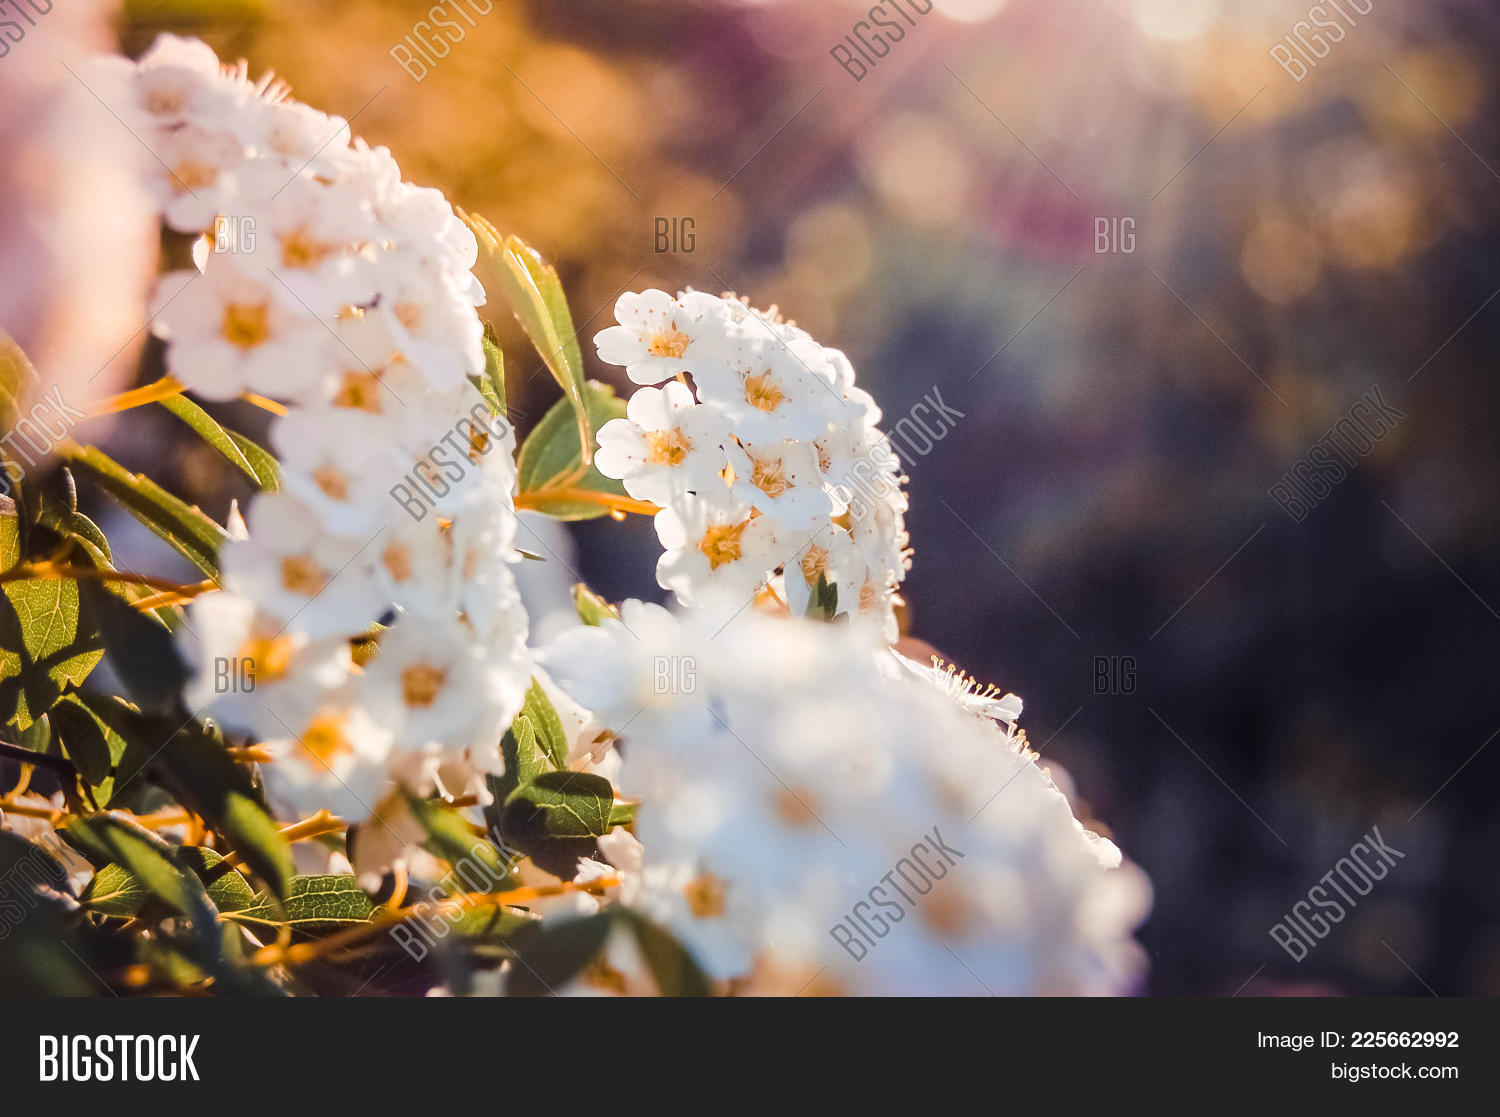 Little White Flowers Image Photo Free Trial Bigstock